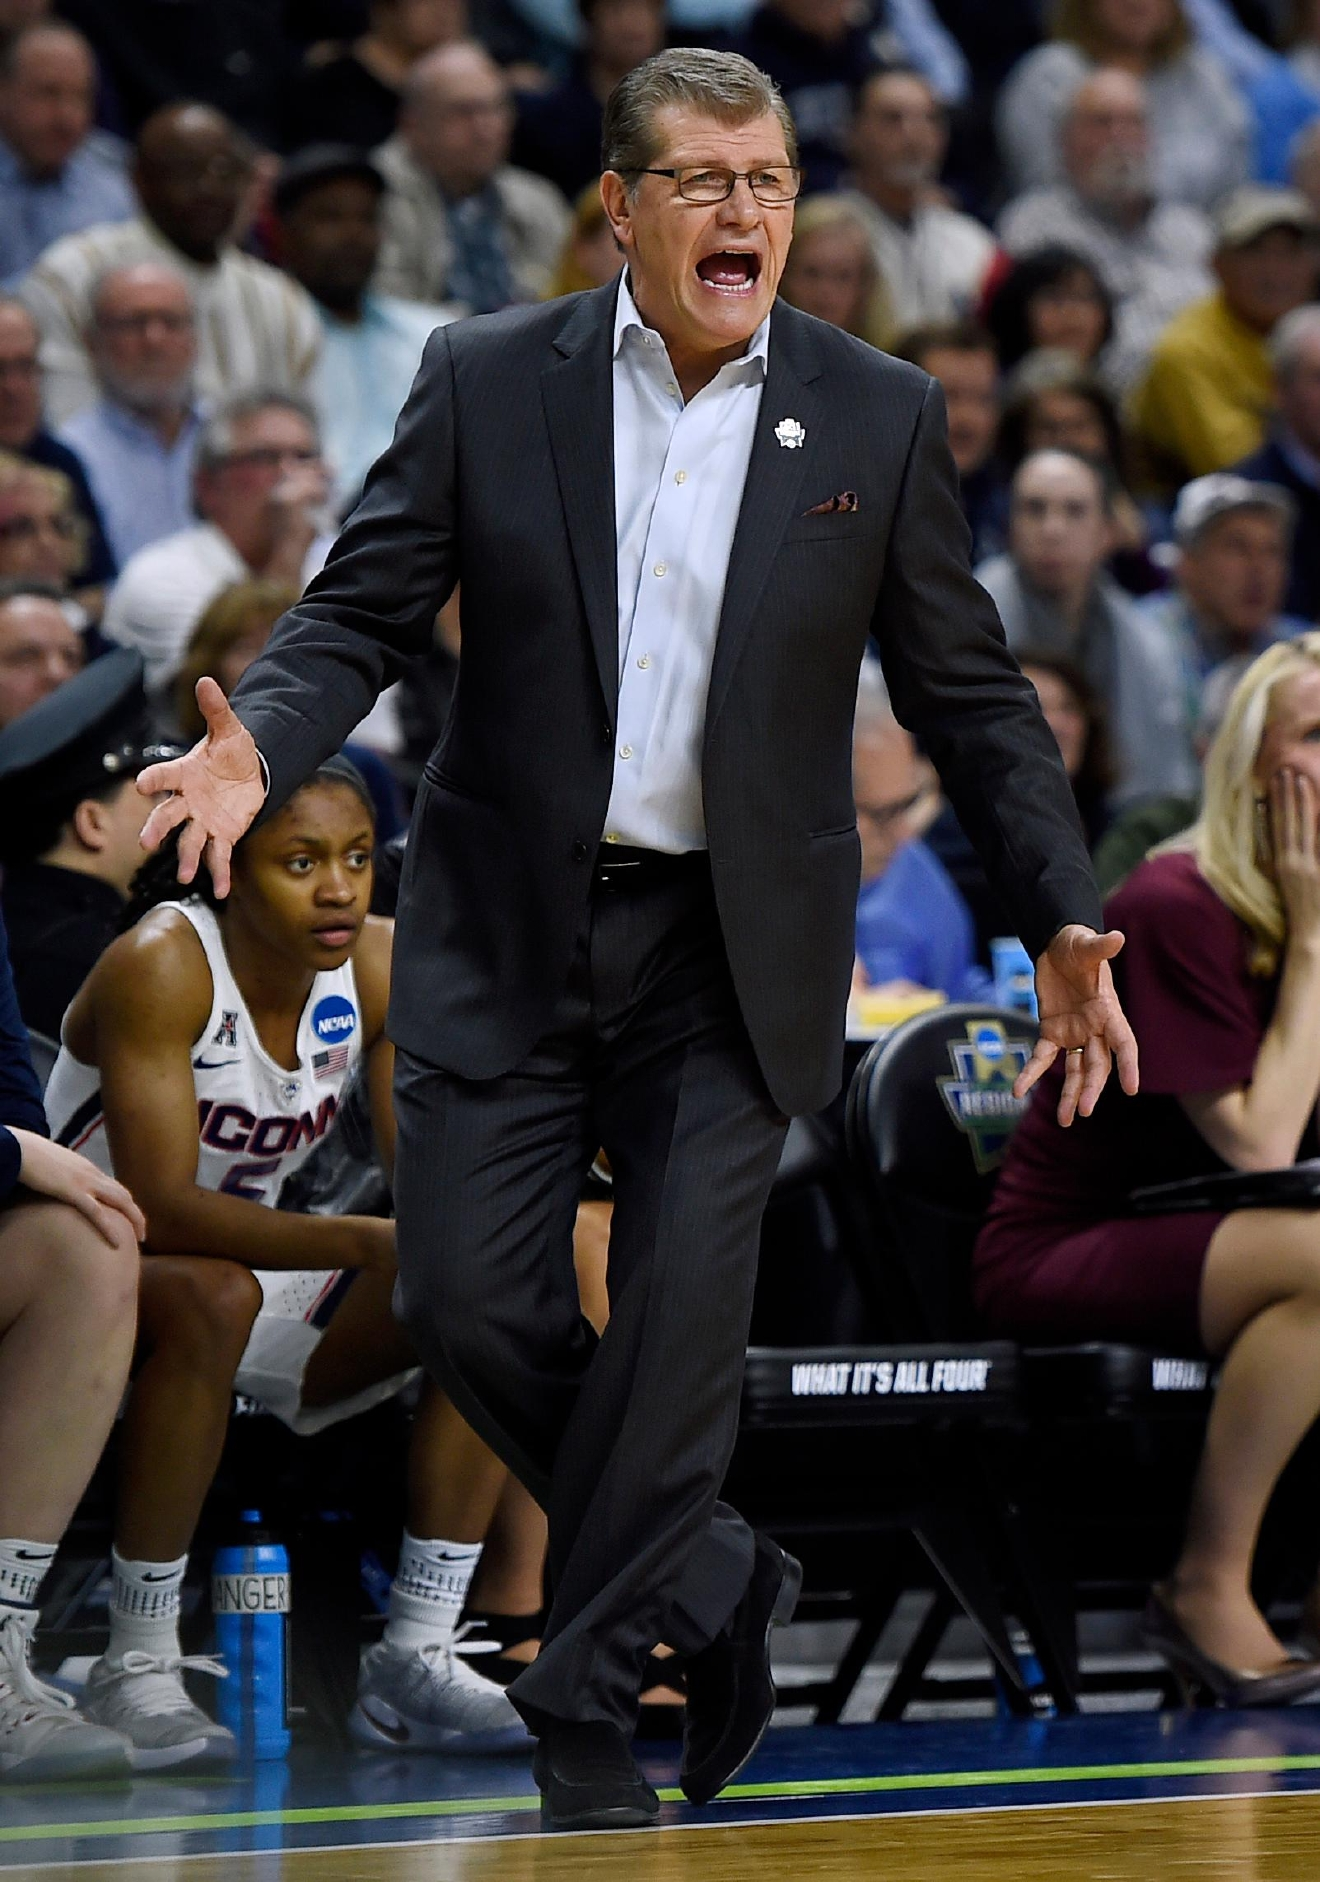 Connecticut head coach Geno Auriemma shouts instructions during the first half of a regional final game between Oregon and Connecticut in the NCAA women's college basketball tournament, Monday, March 27, 2017, in Bridgeport, Conn. (AP Photo/Jessica Hill)